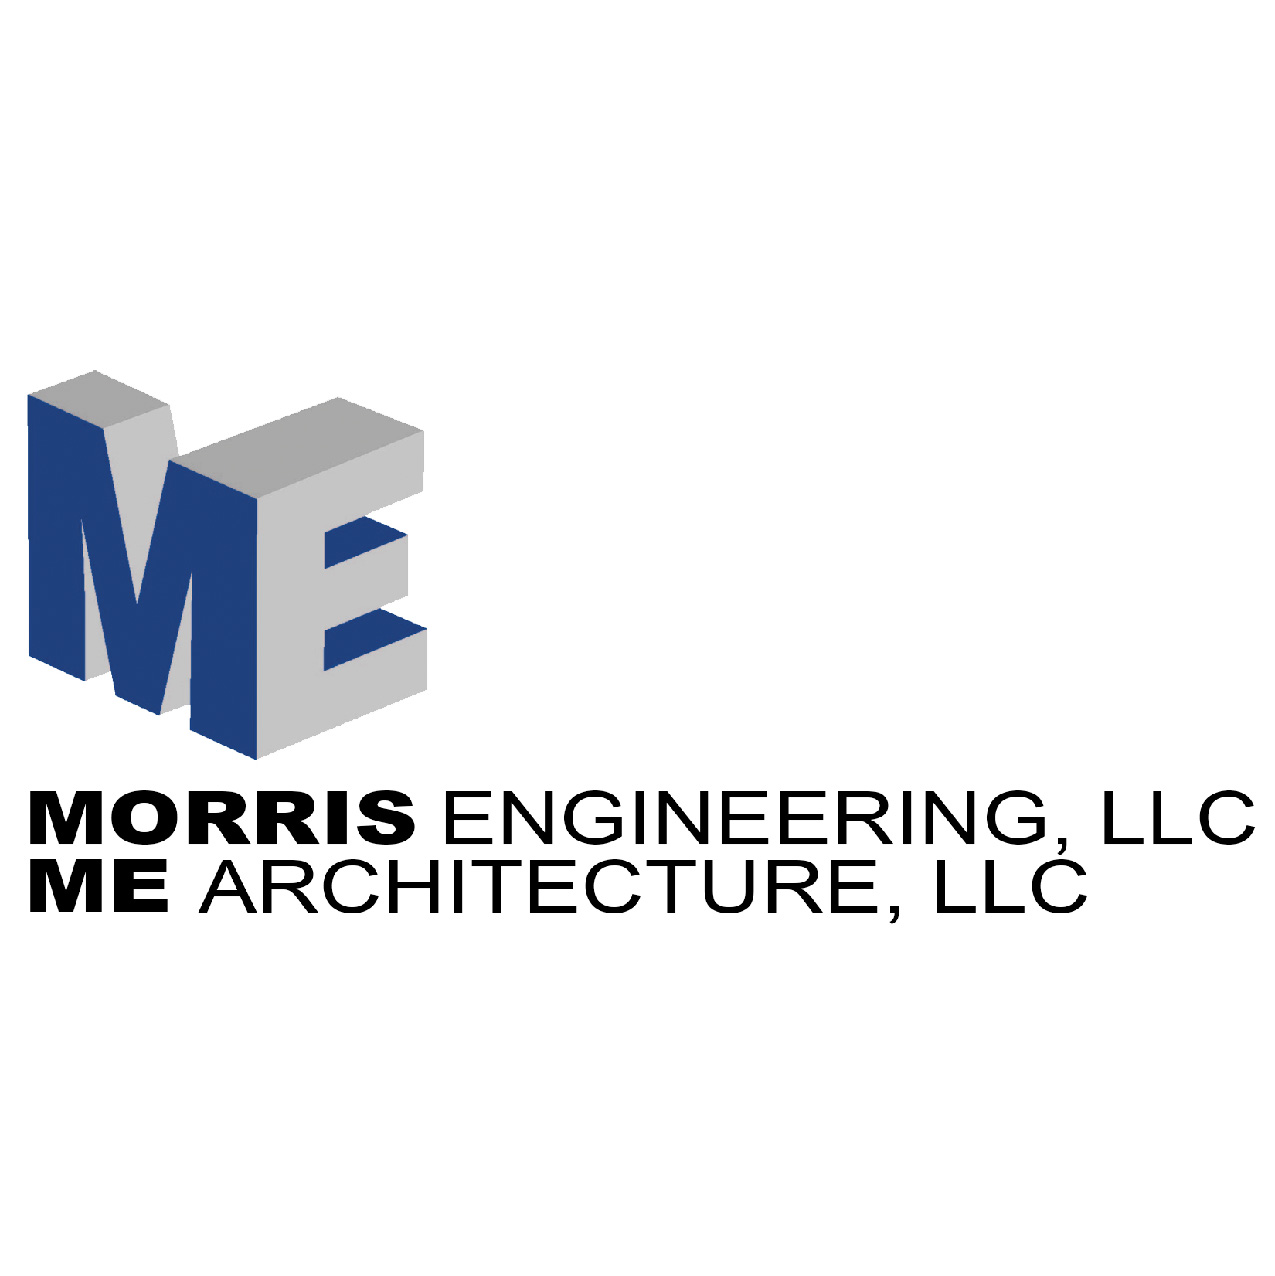 Morris Engineering, LLC